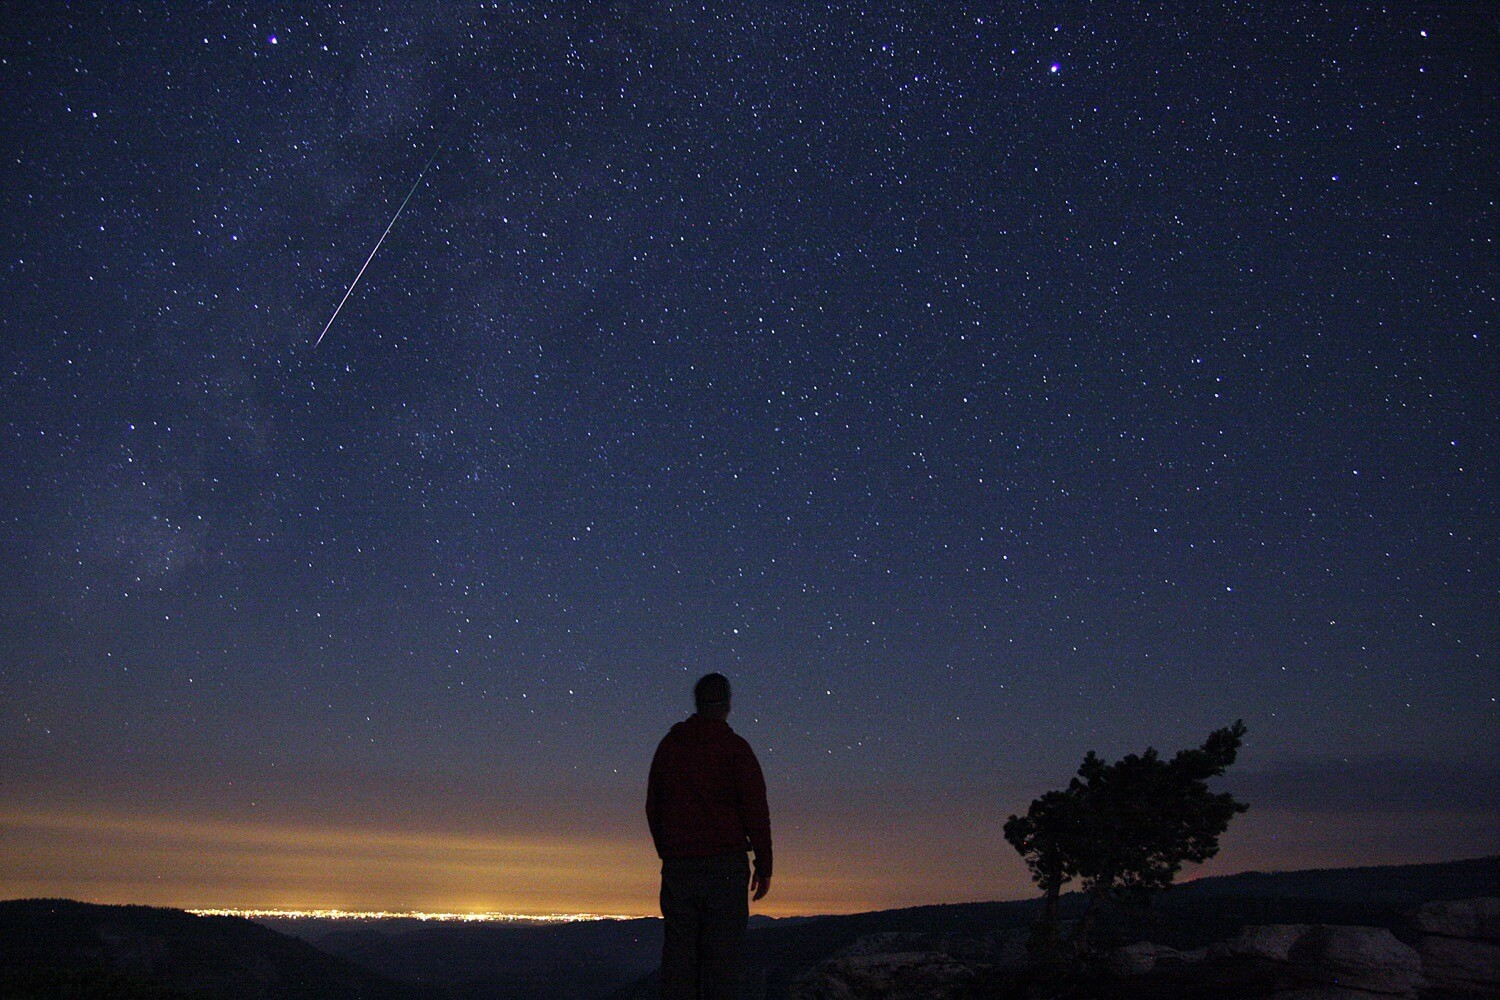 What to do in the evening? Go to photograph meteors with a prescription from NASA